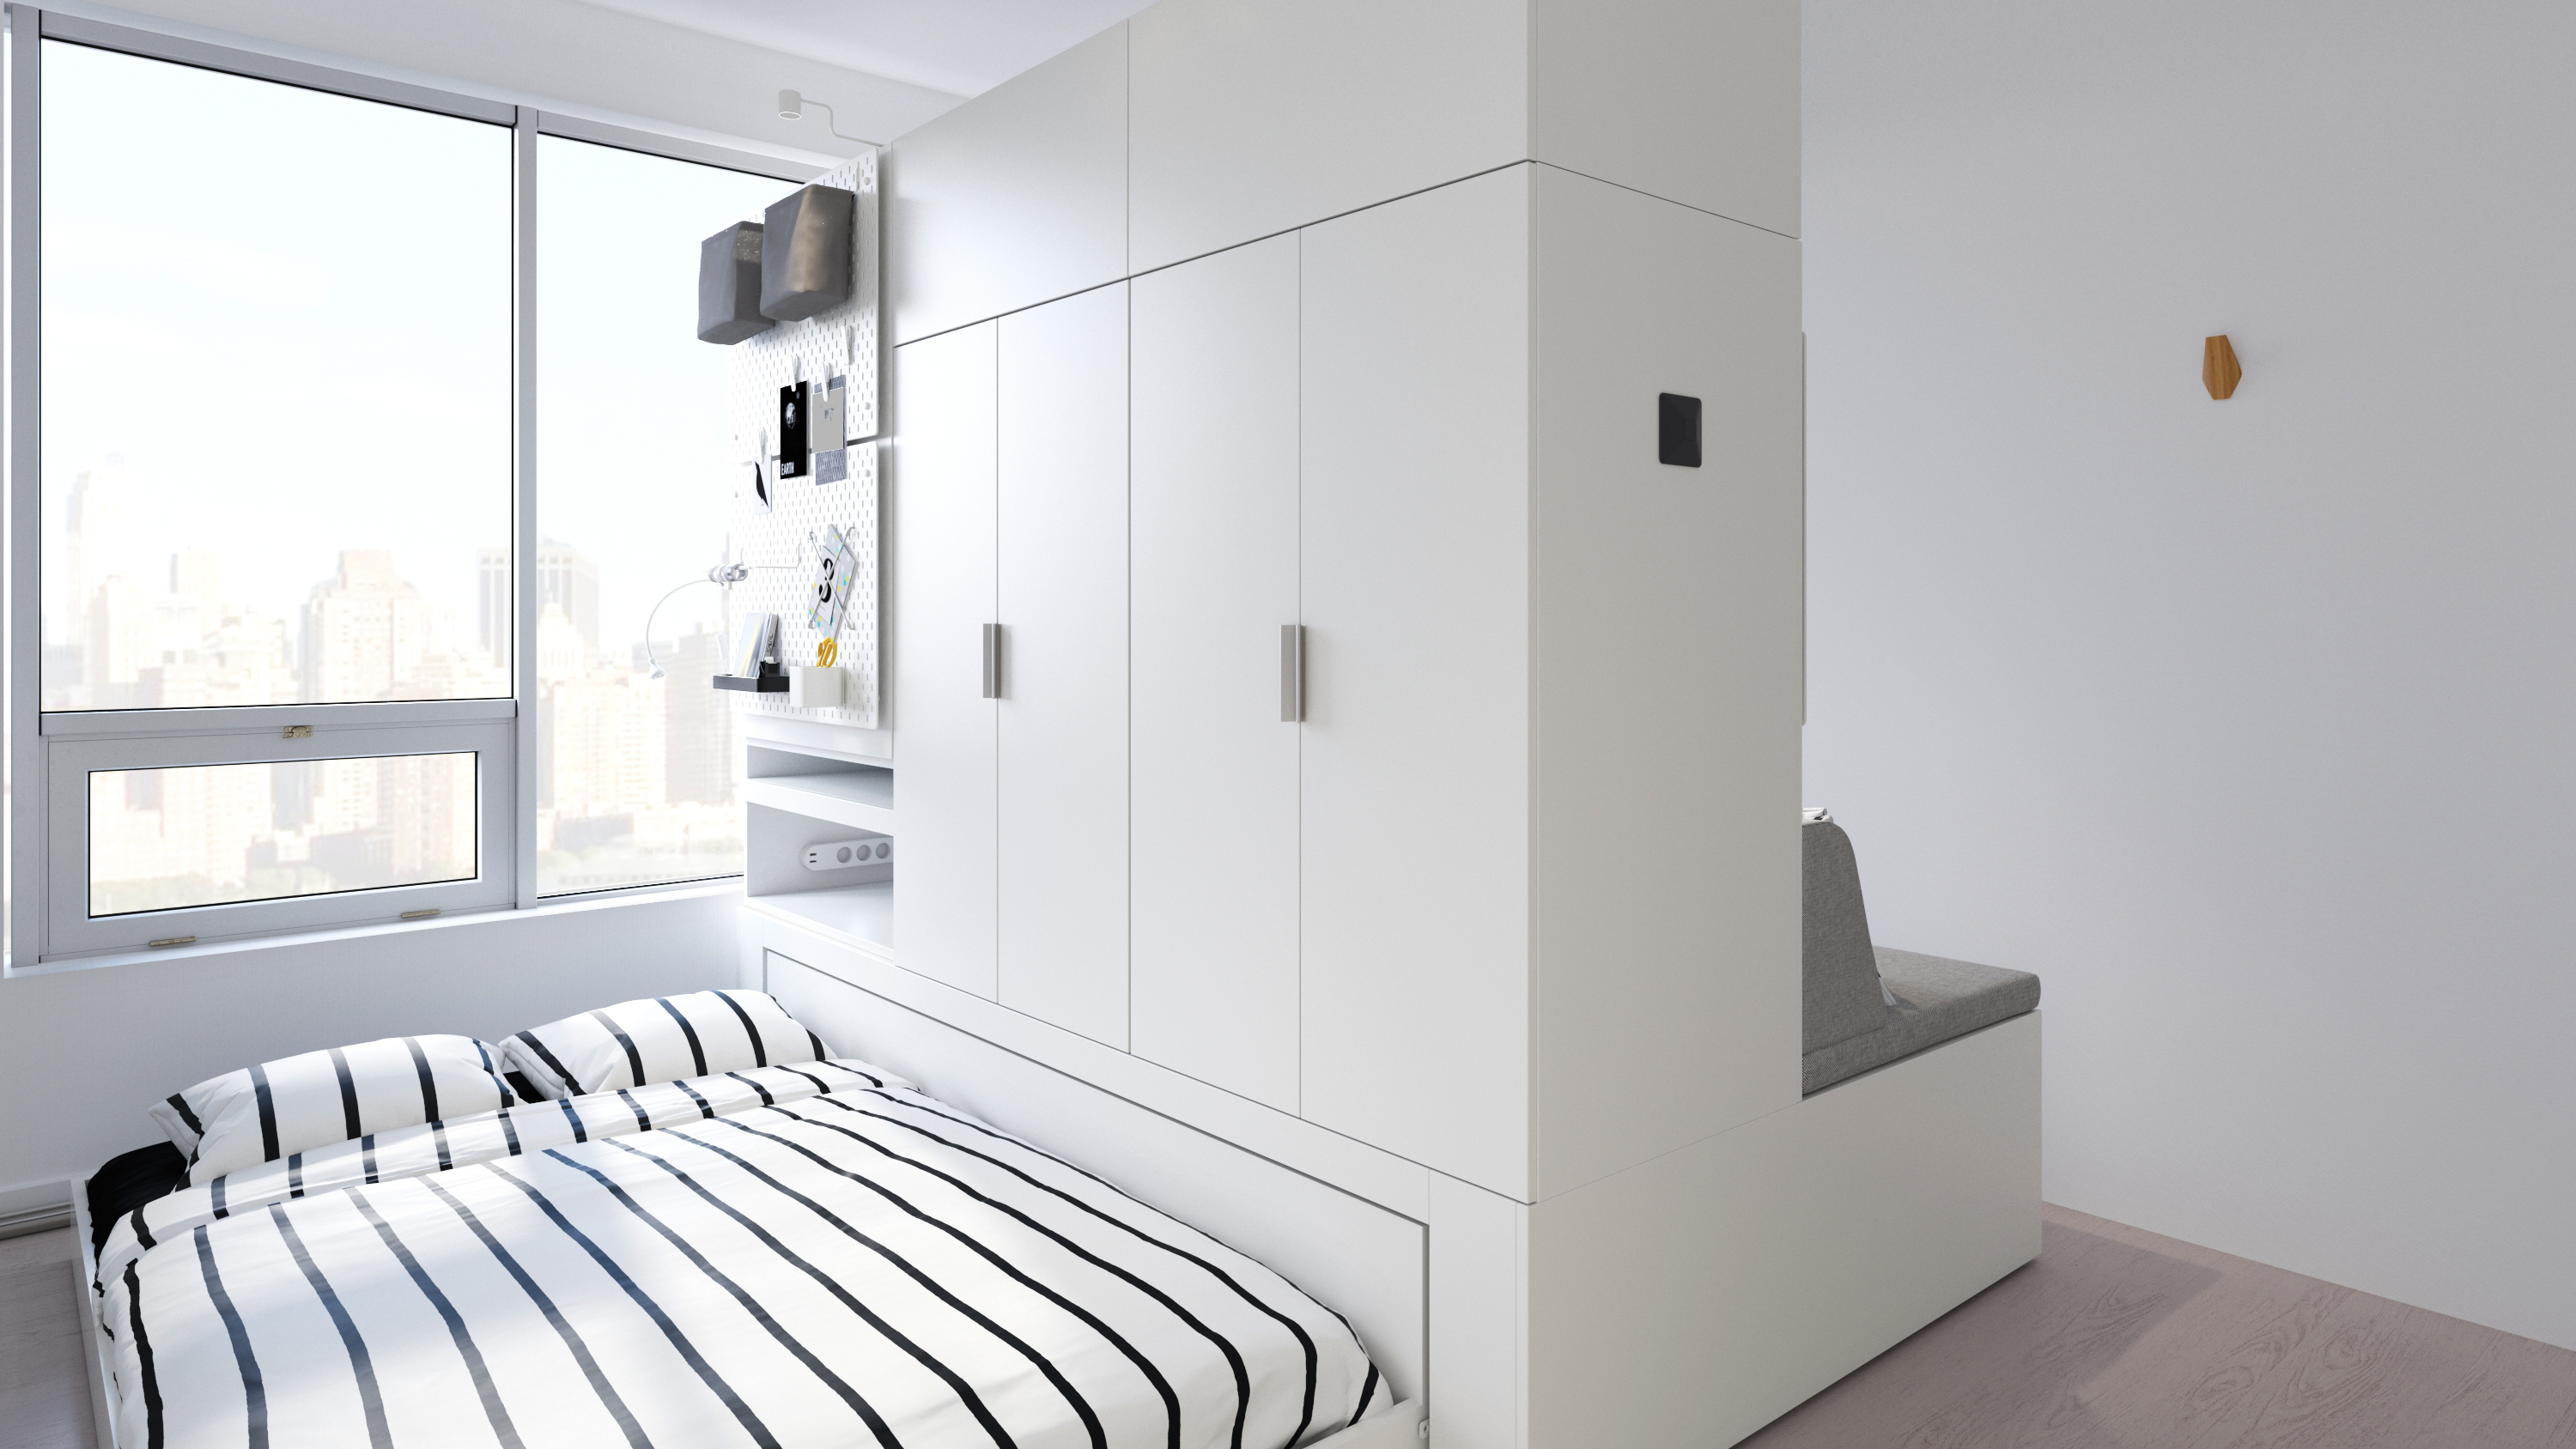 House Furniture New Ikea Collaboration Features Robotic Furniture For Small Space